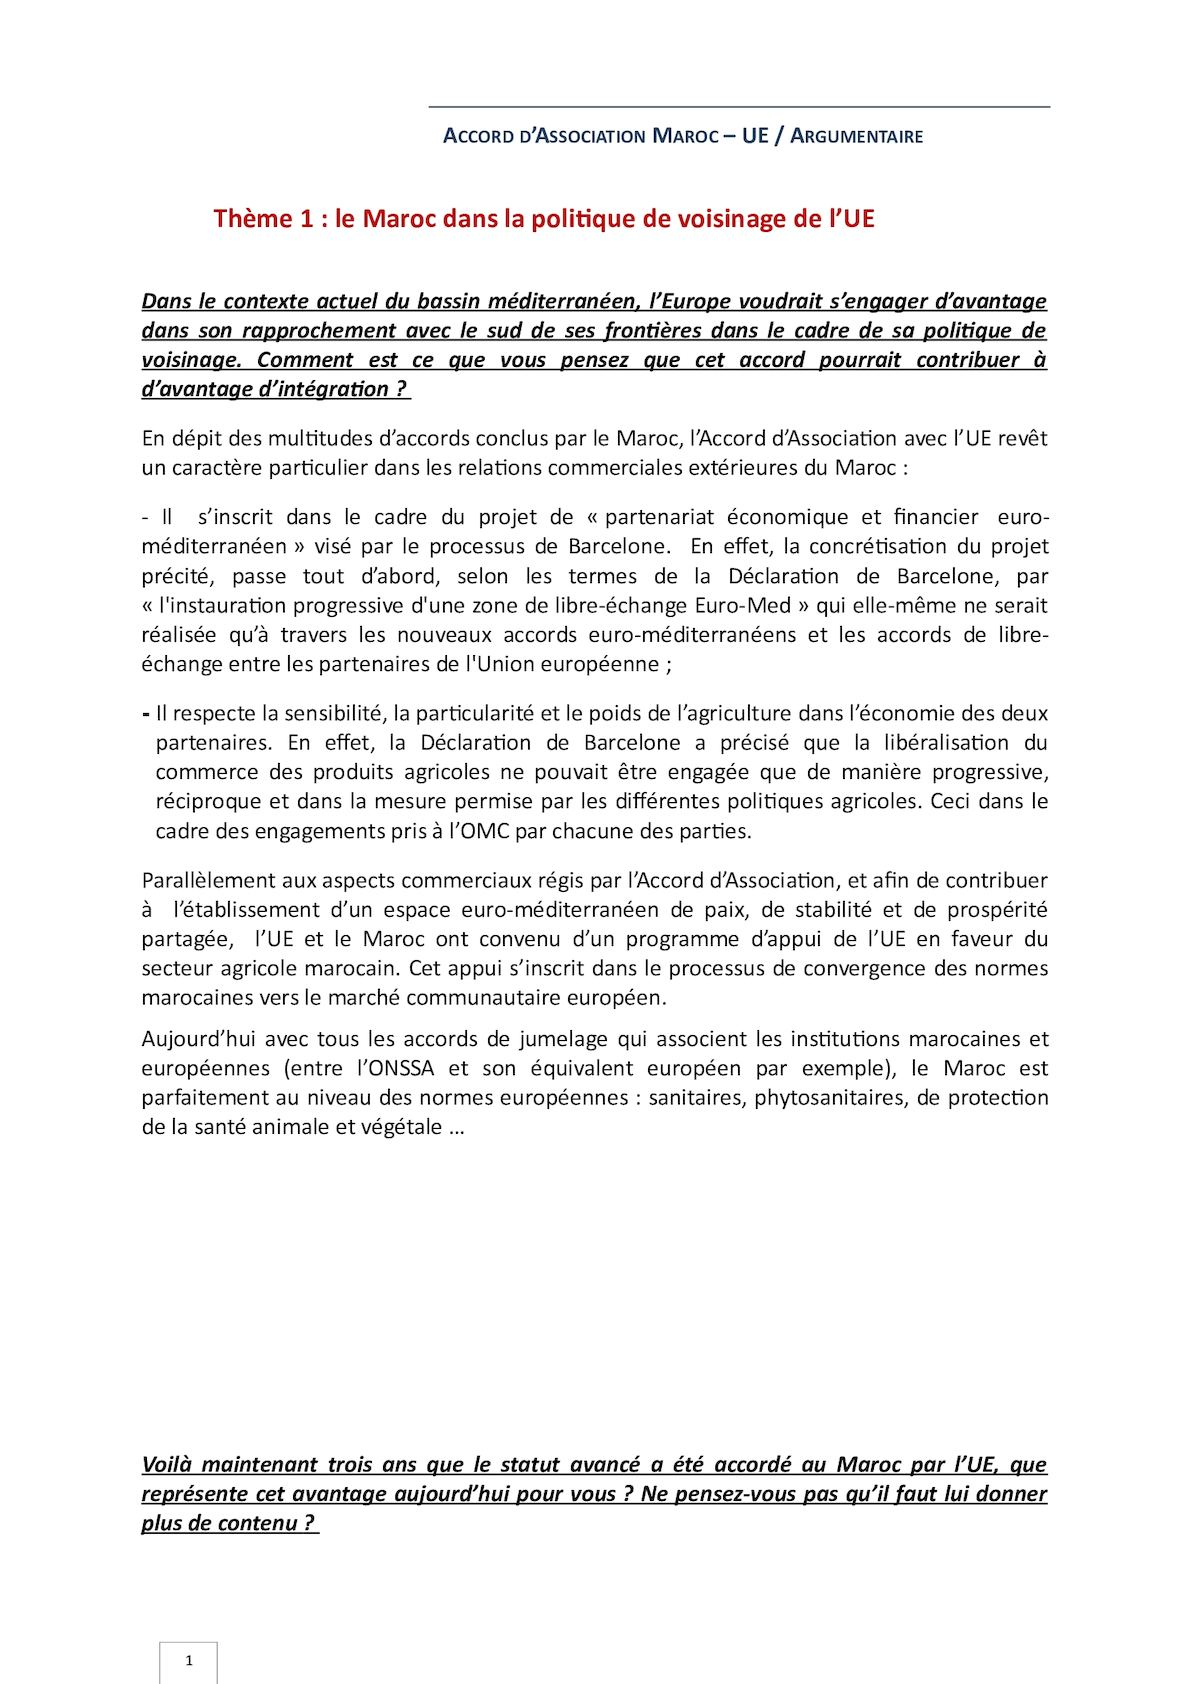 Mapm Argumentaire Accord Agricole